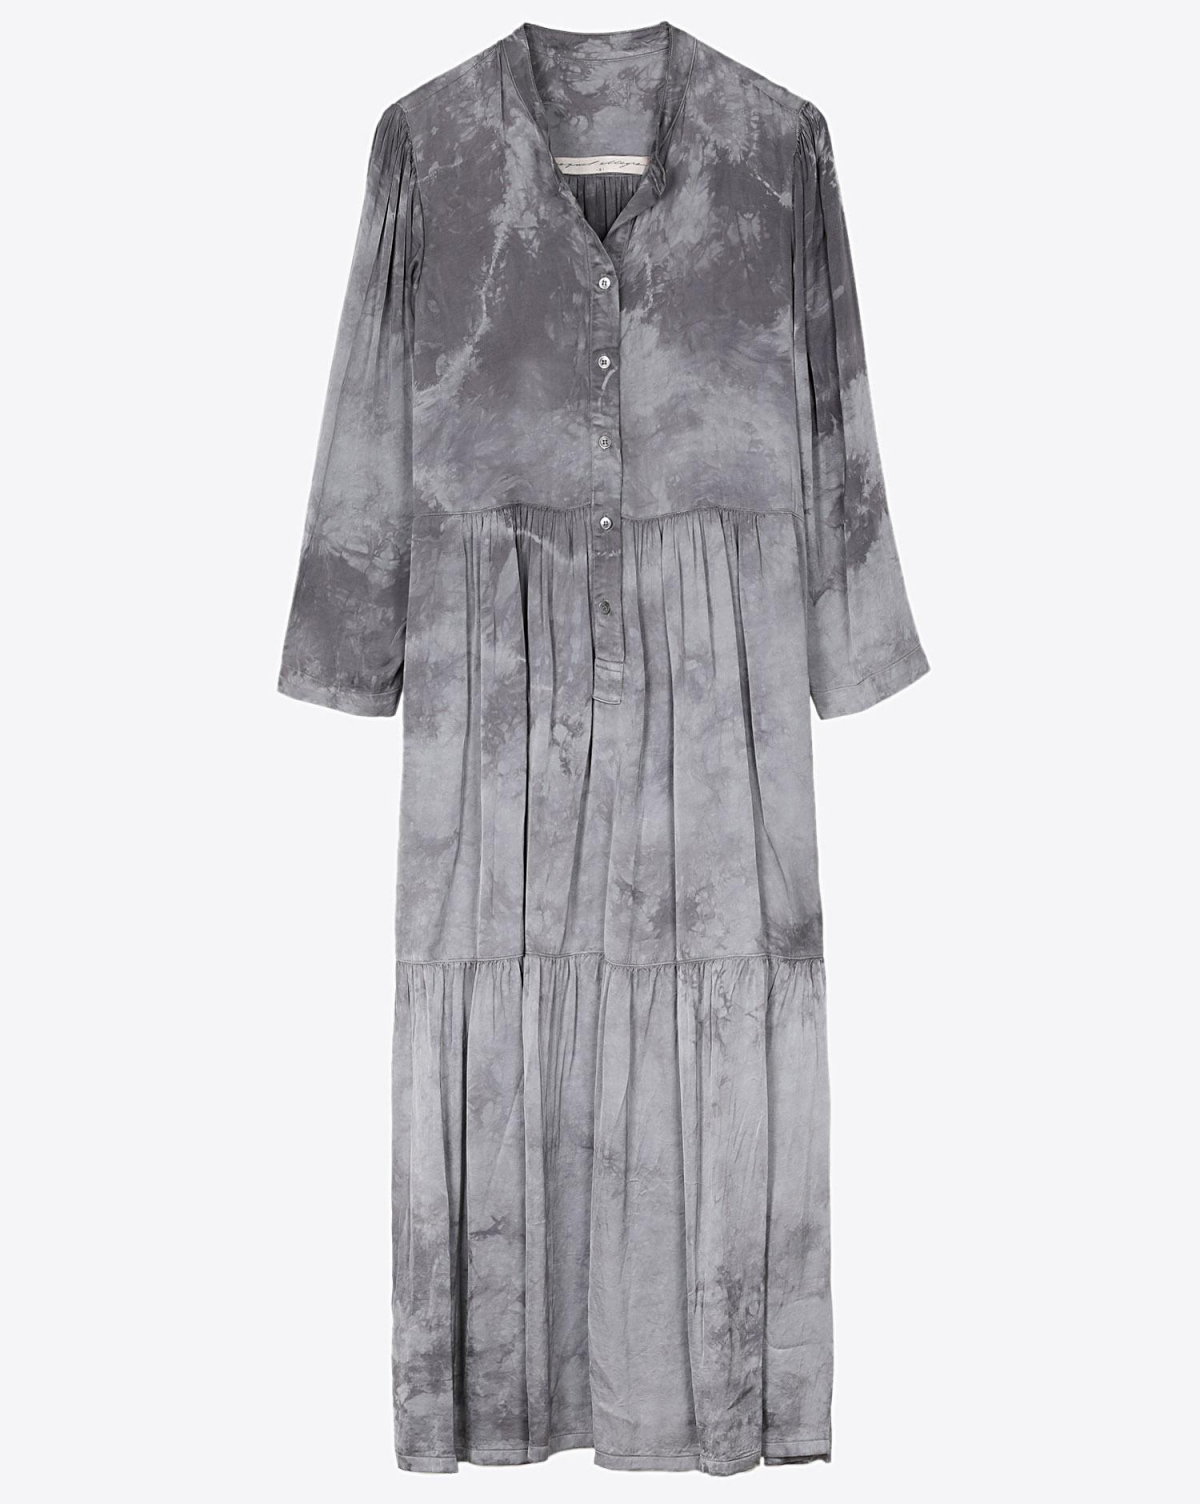 Raquel Allegra Twila Dress - Silver Tie Dye